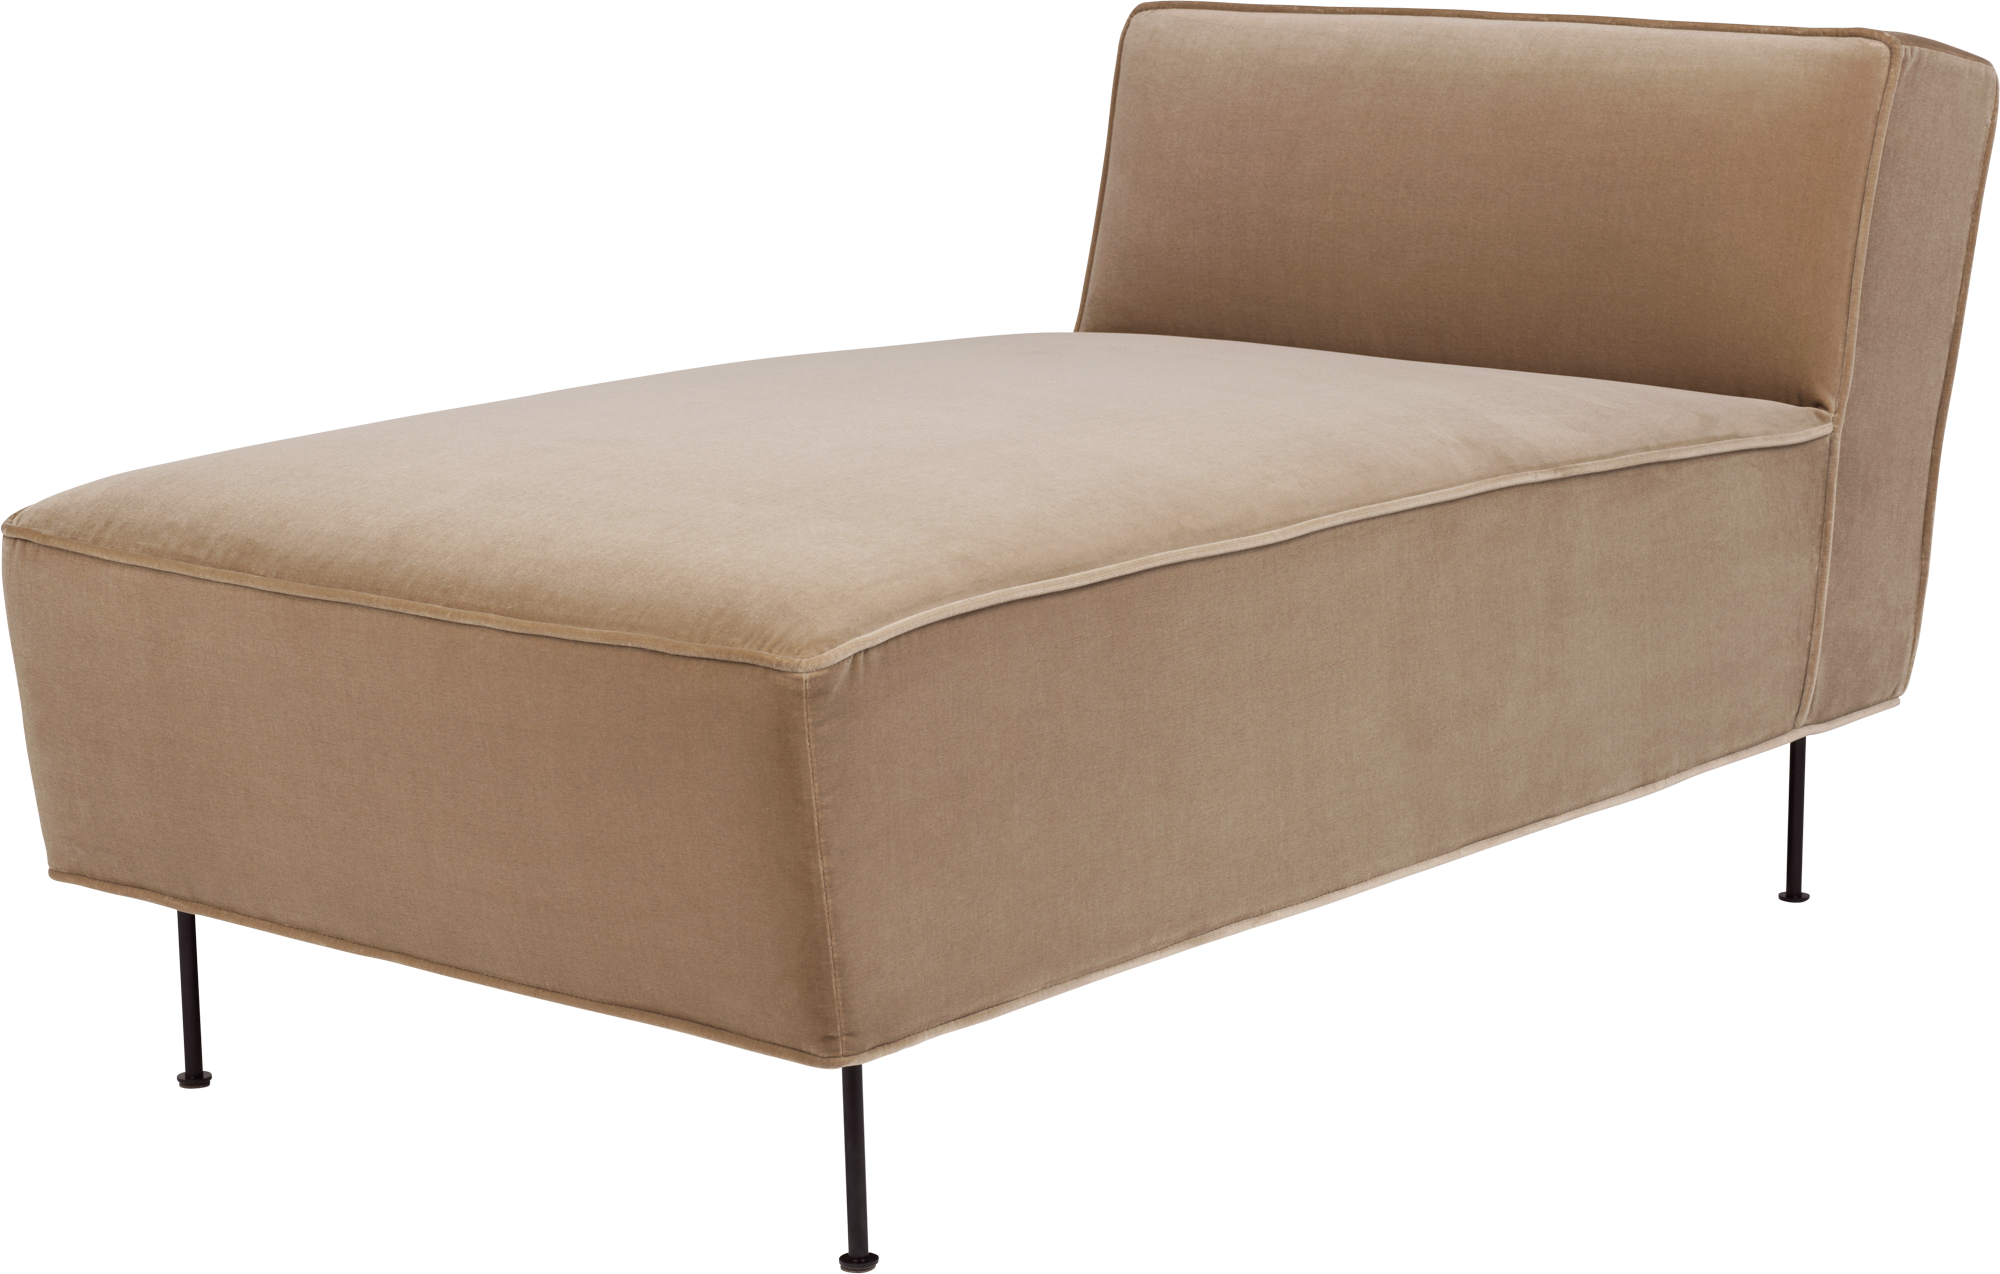 Copy of Modern Line Chaise Longues